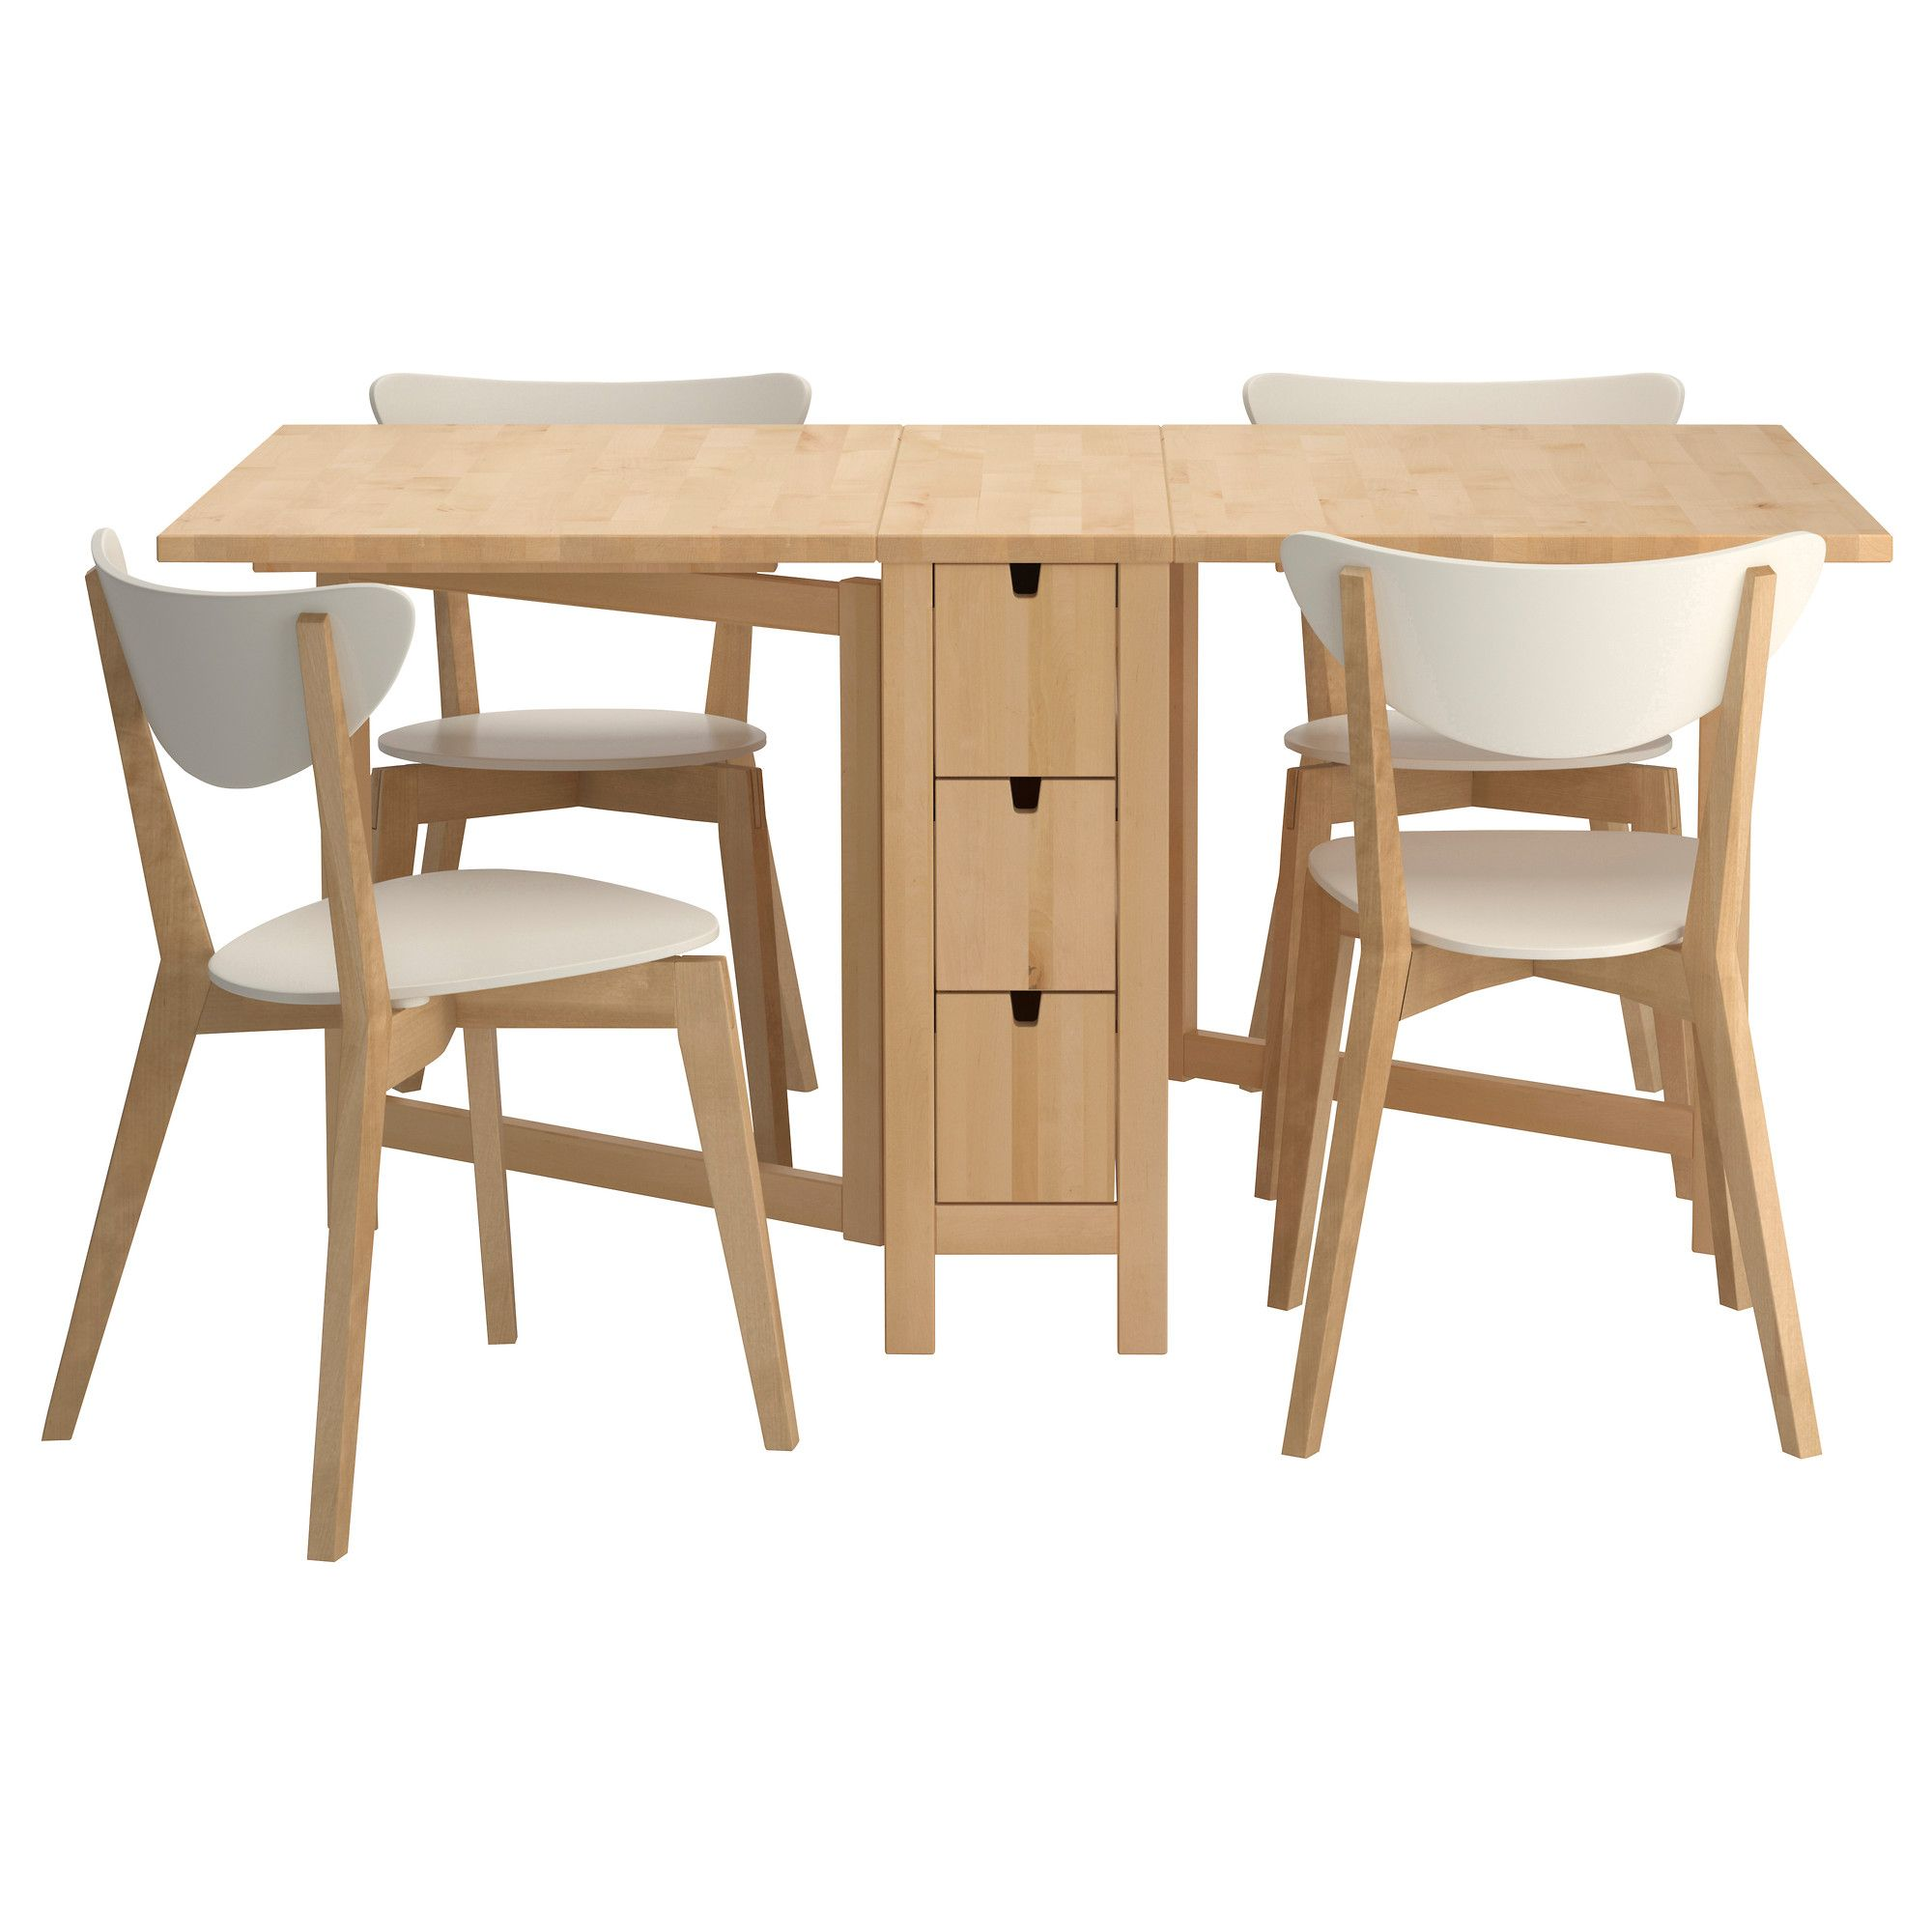 Norden nordmyra table and 4 chairs ikea for the love for Small kitchen dining table ideas